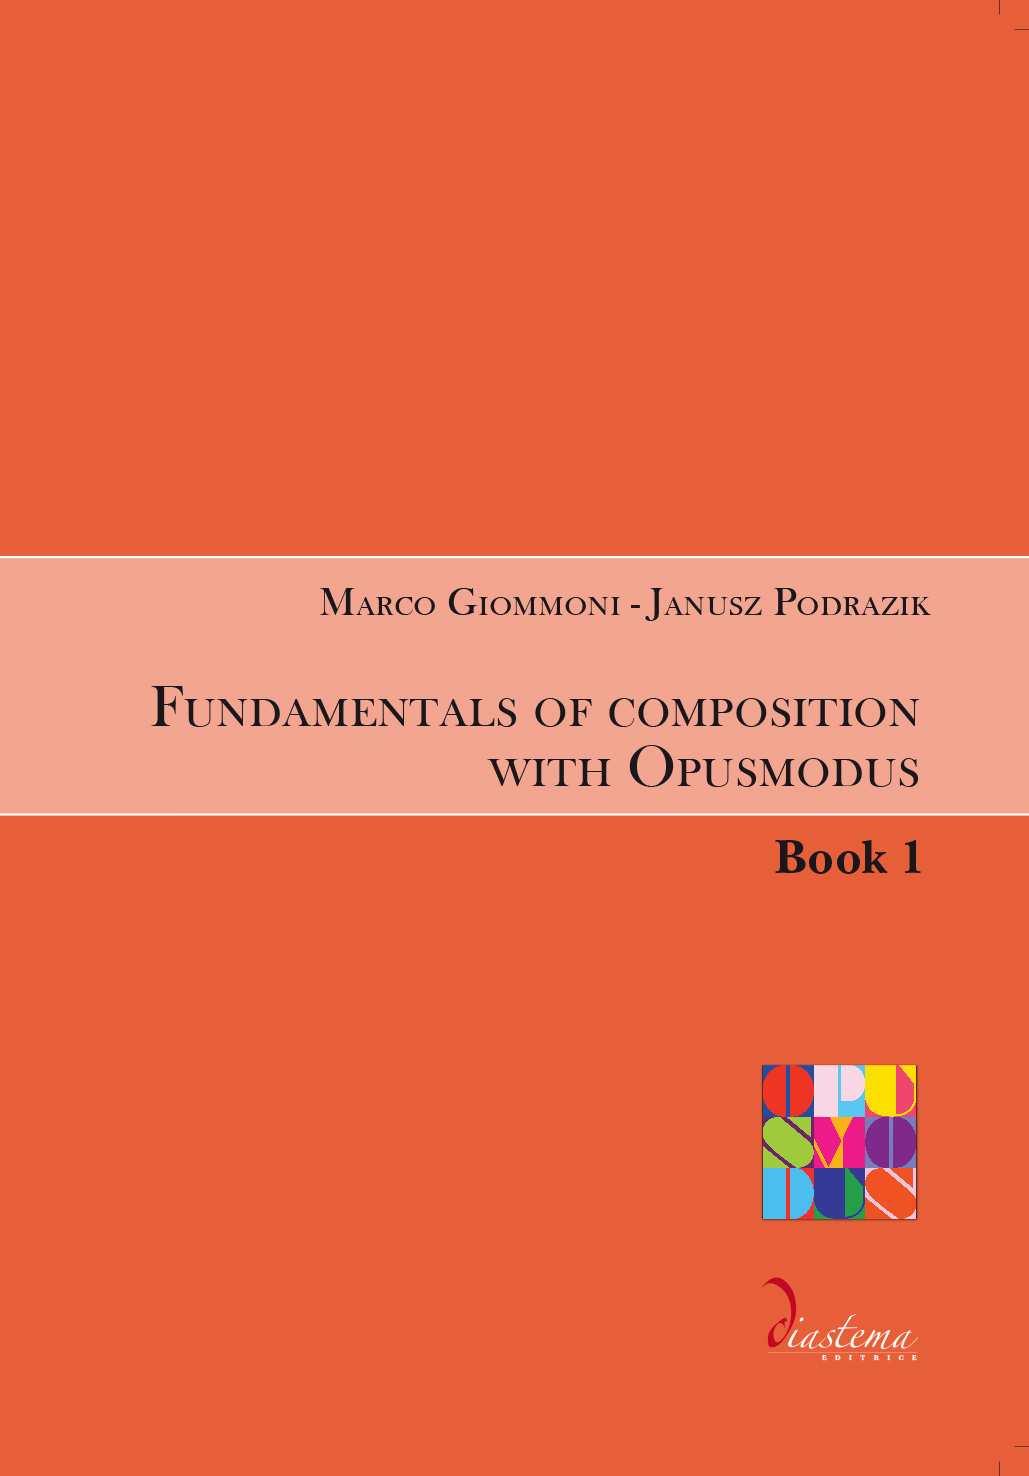 """<strong><span style=""""color: #000000;"""">Marco Giommoni - Janusz Podrazik<br><span style=""""color: #b10f26;"""">Fundamentals of composition with Opusmodus</p></span></strong><span style=""""color: #000;"""">Book 1</strong></p>"""